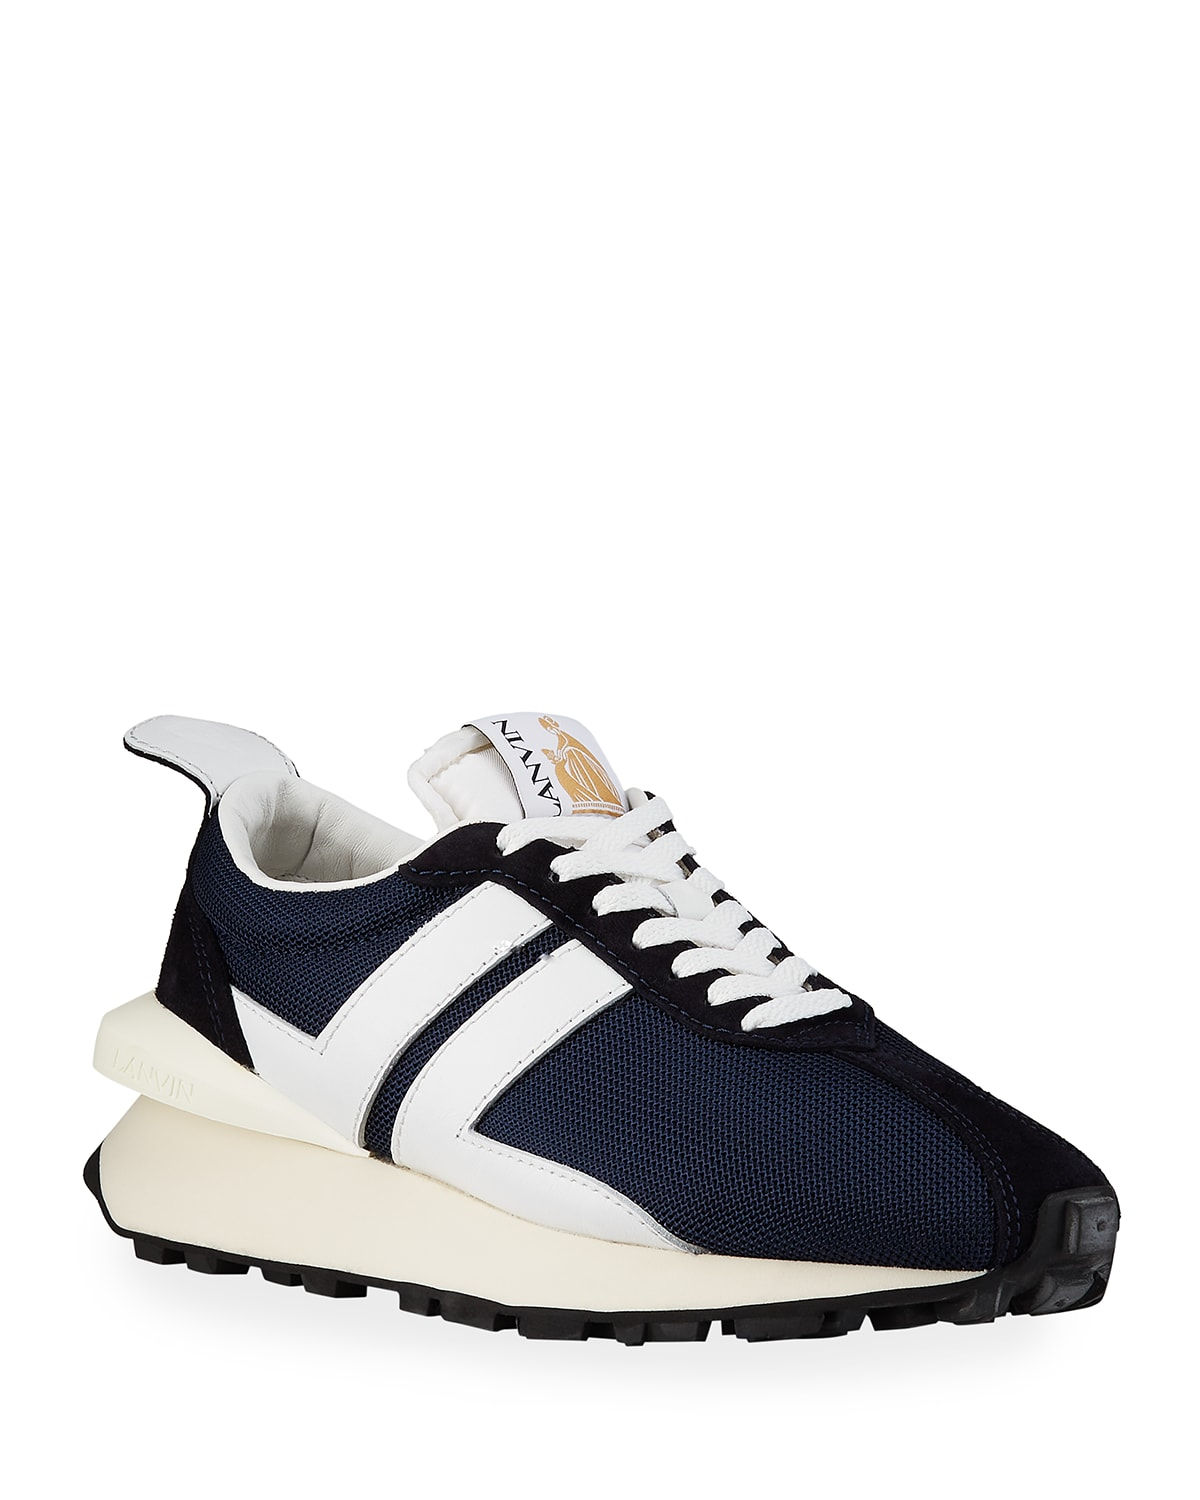 Men's Tricolor Suede-Leather Low-Top Sneakers